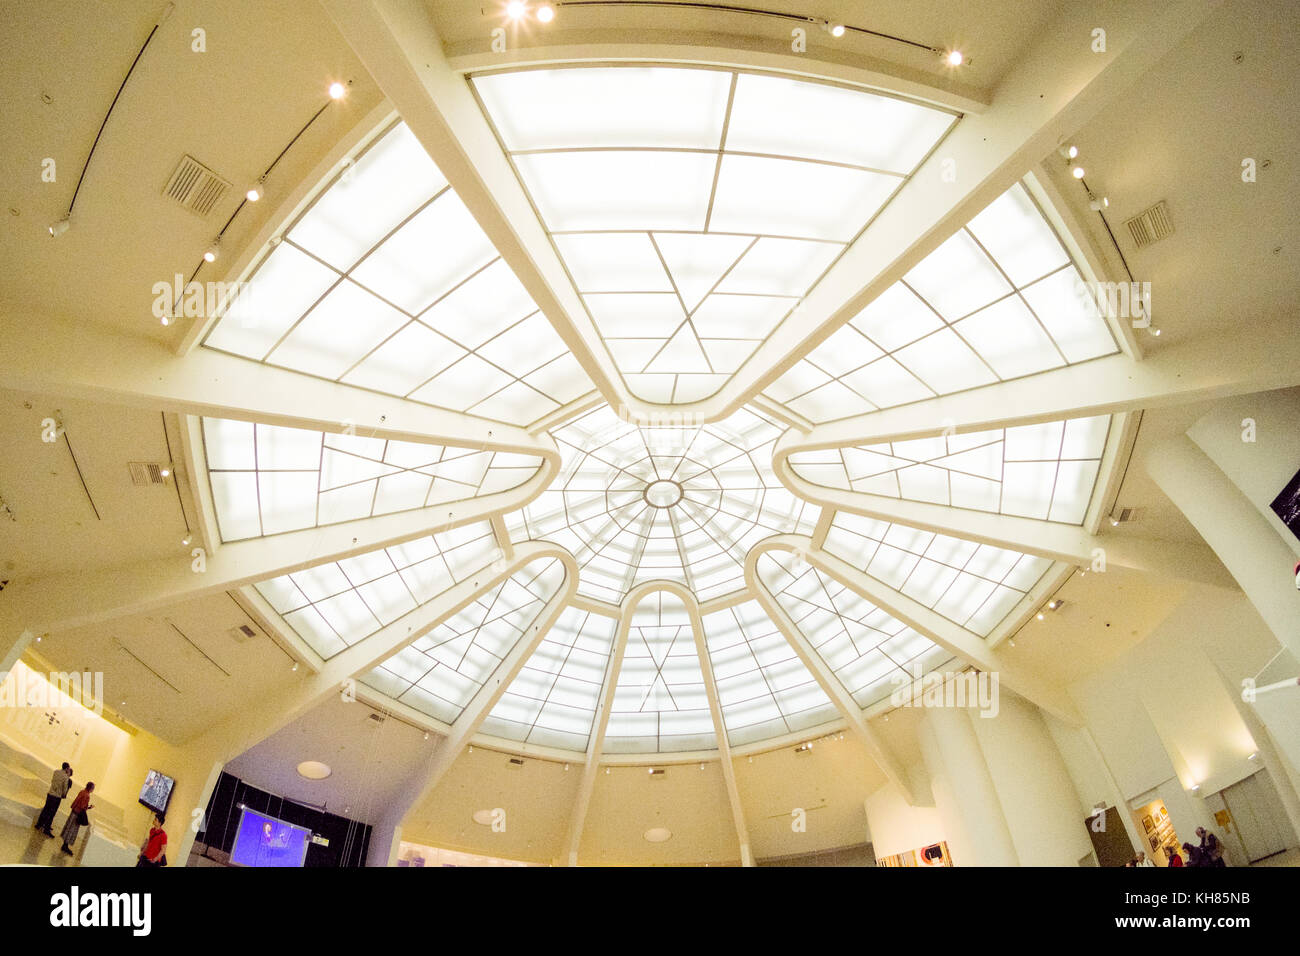 Central skylight Guggenheim Museum, 5th Avenue, Manhattan, New York City, NY, United States of America. U.S.A. - Stock Image